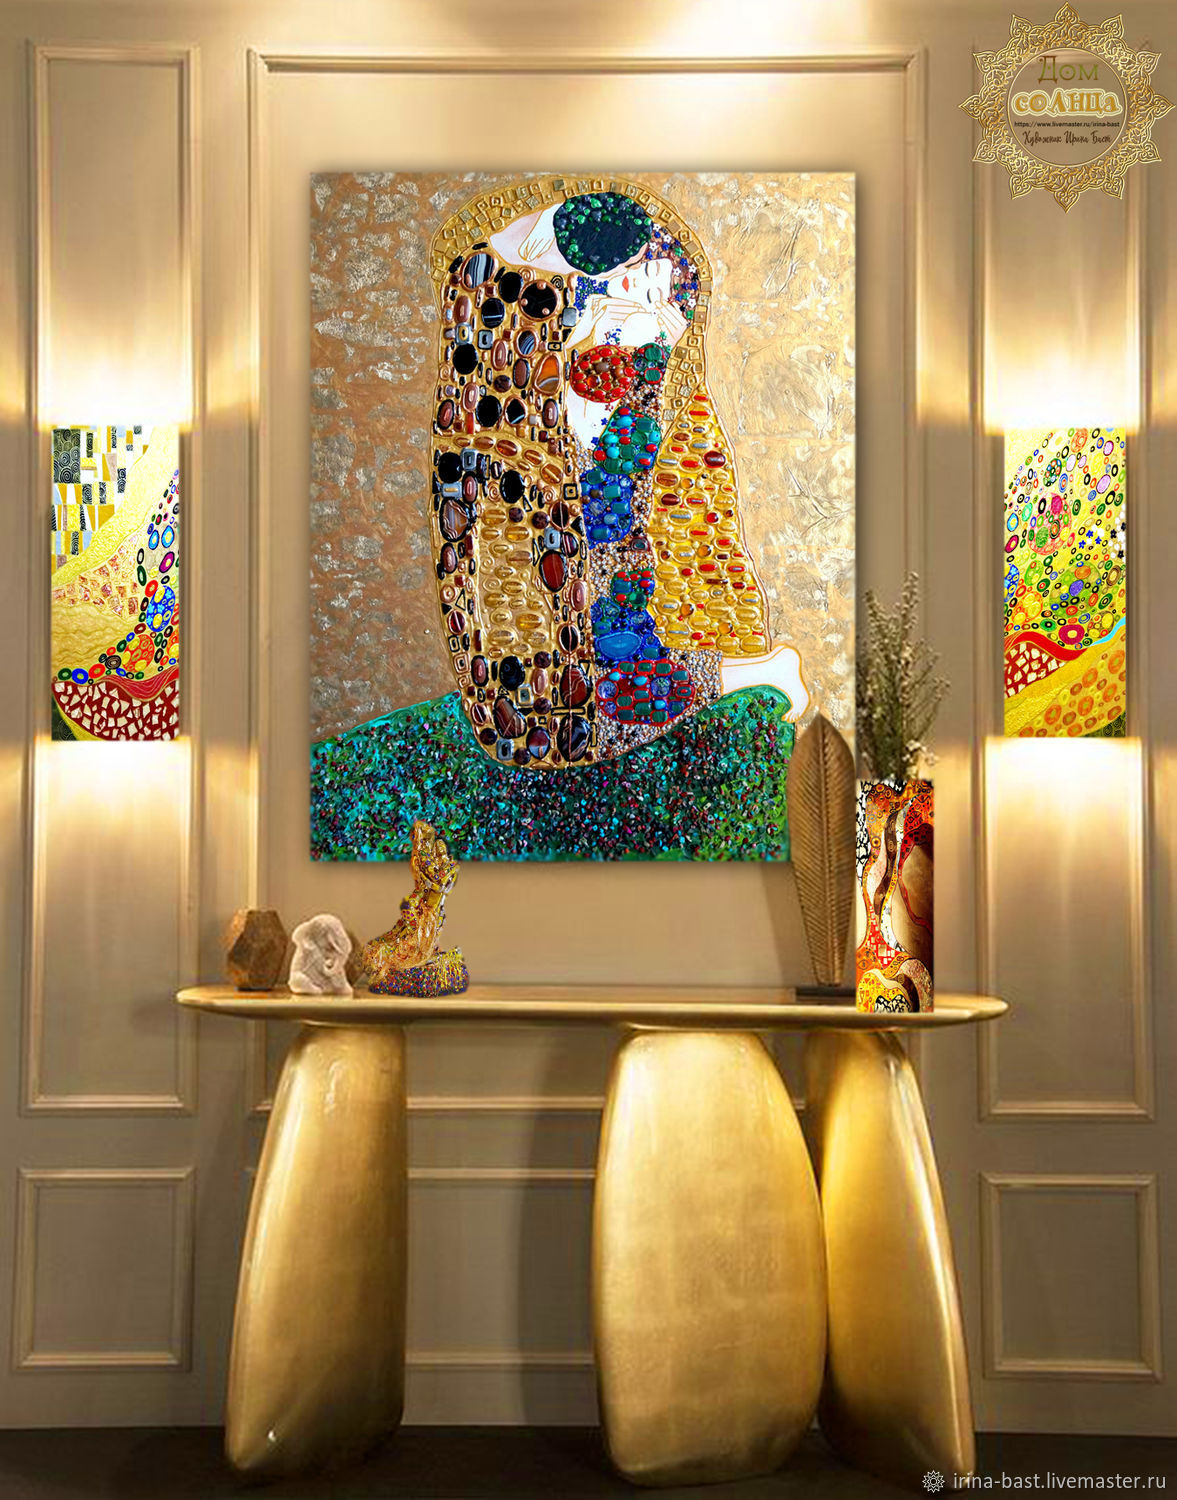 Painting of the semi-precious stones Gustav Klimt The Kiss, Pictures, St. Petersburg,  Фото №1